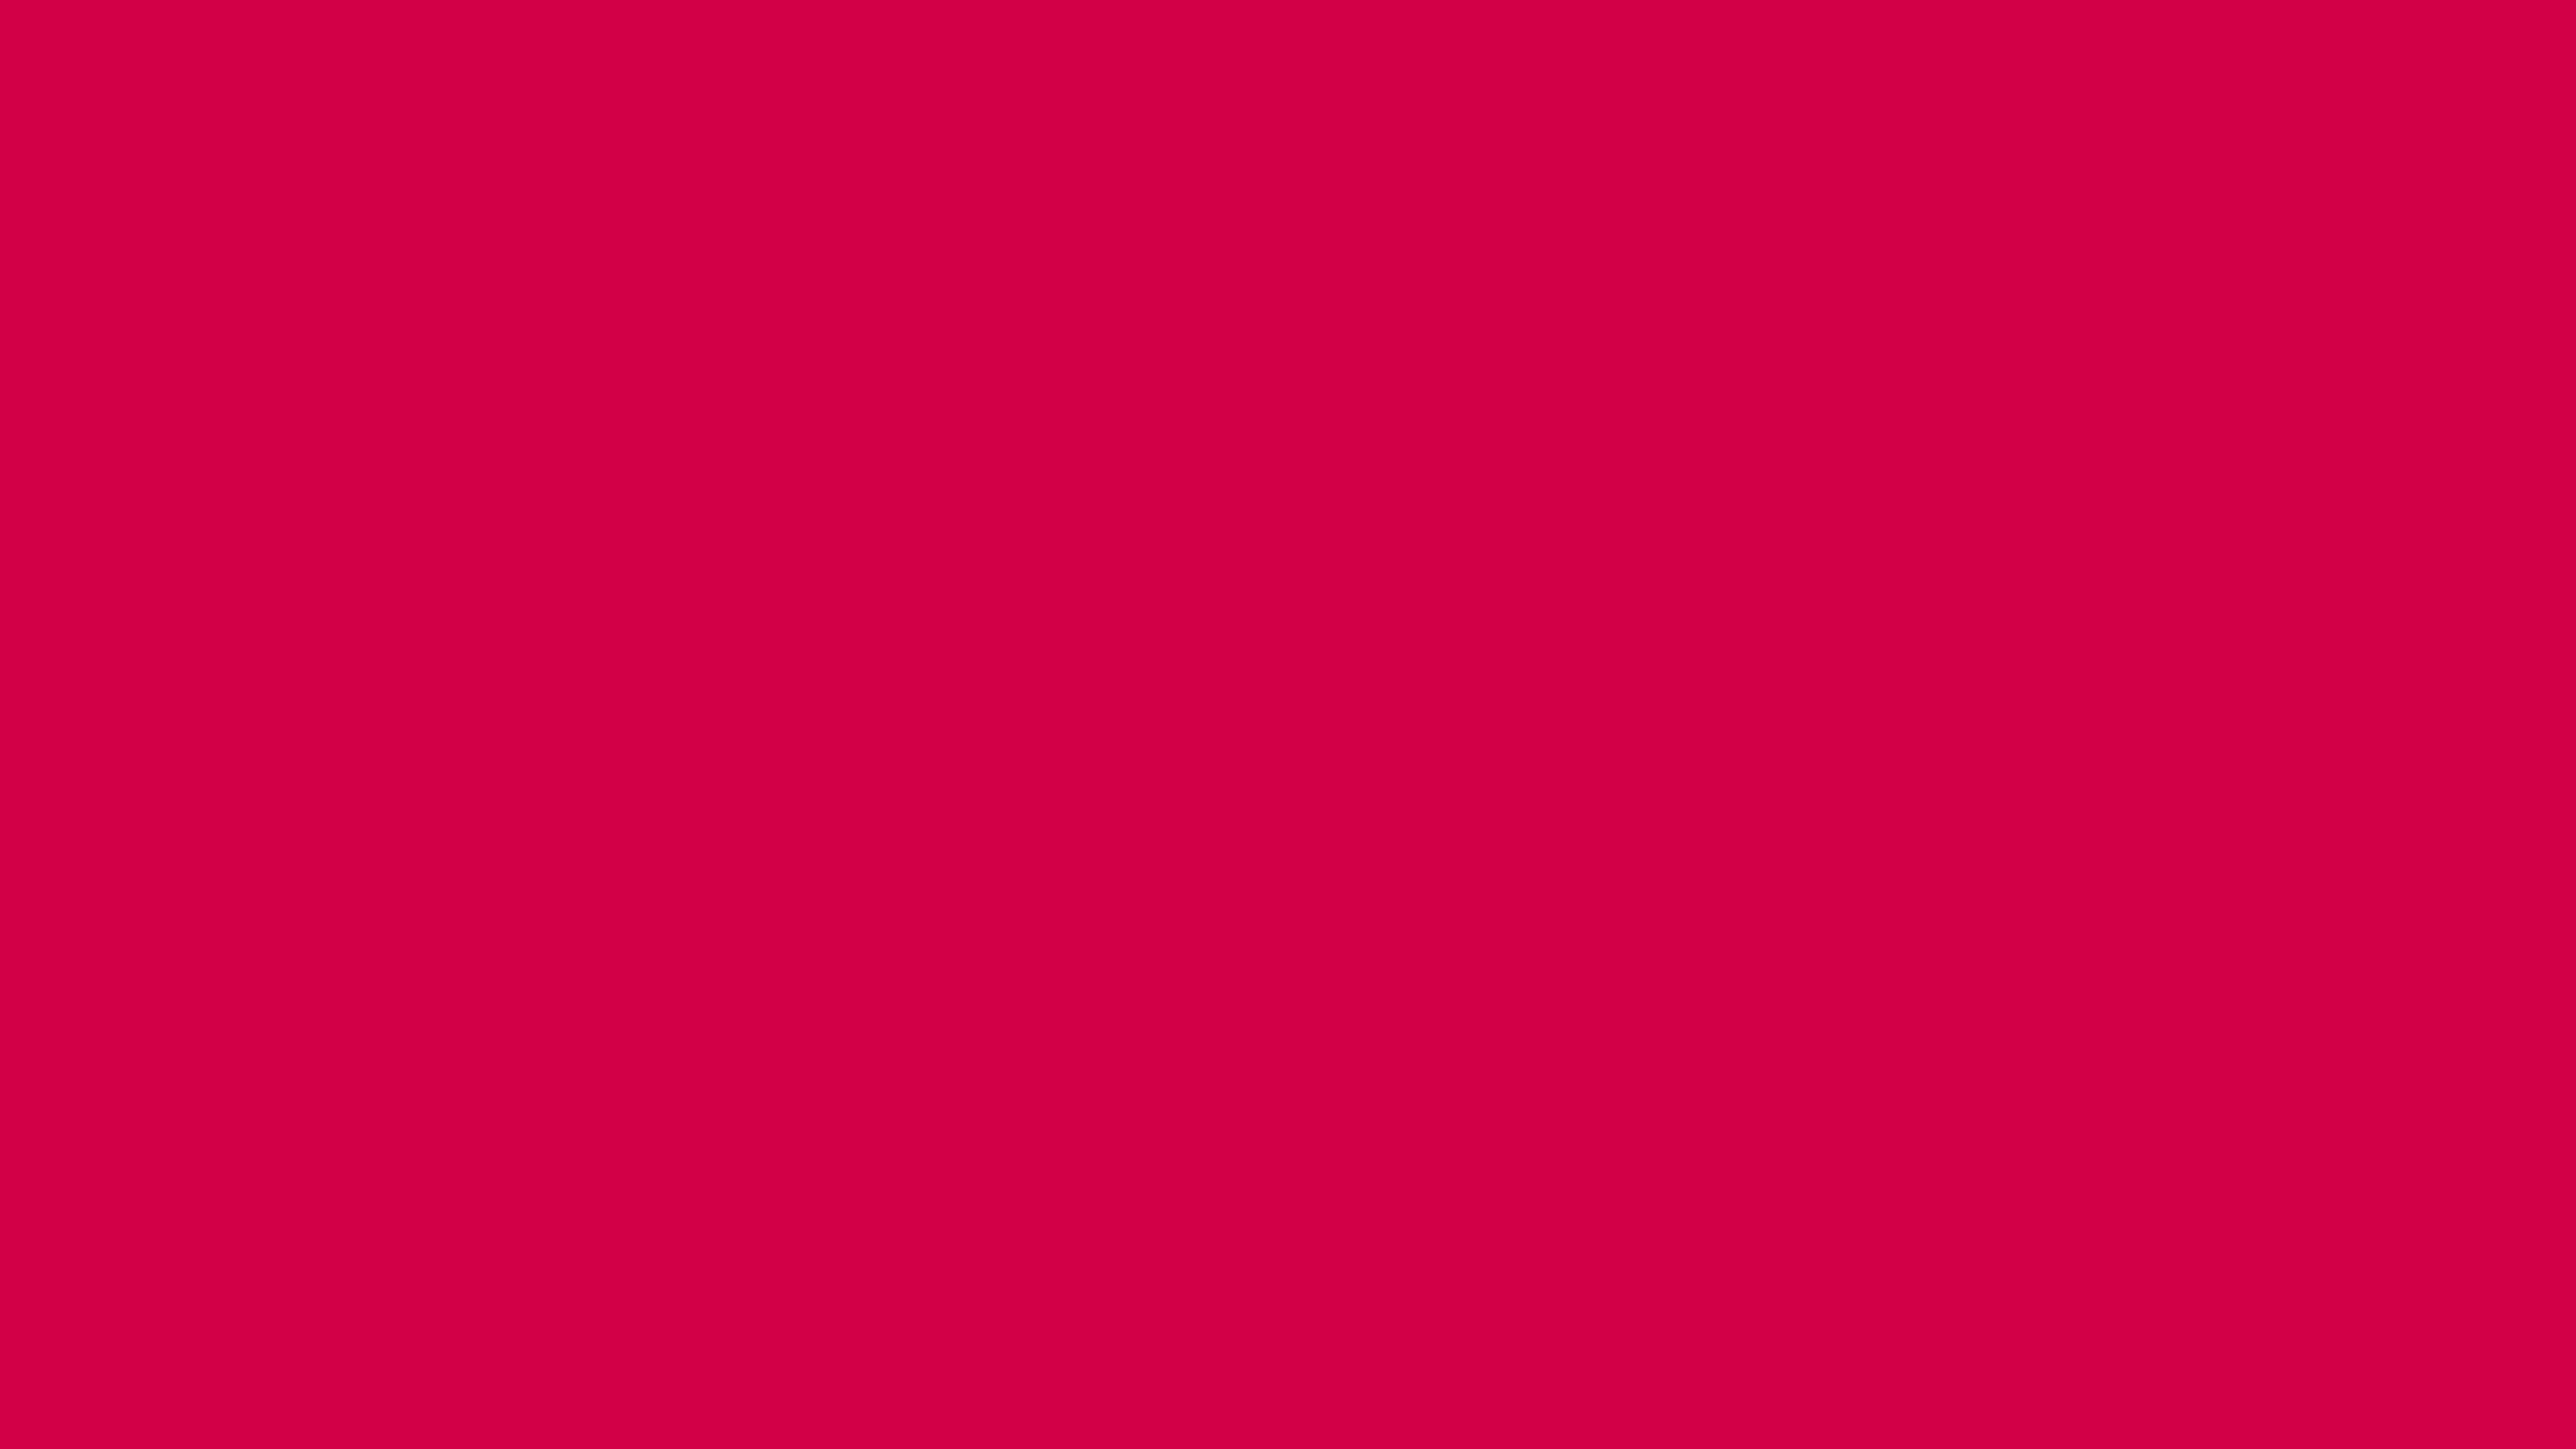 7680x4320 Spanish Carmine Solid Color Background